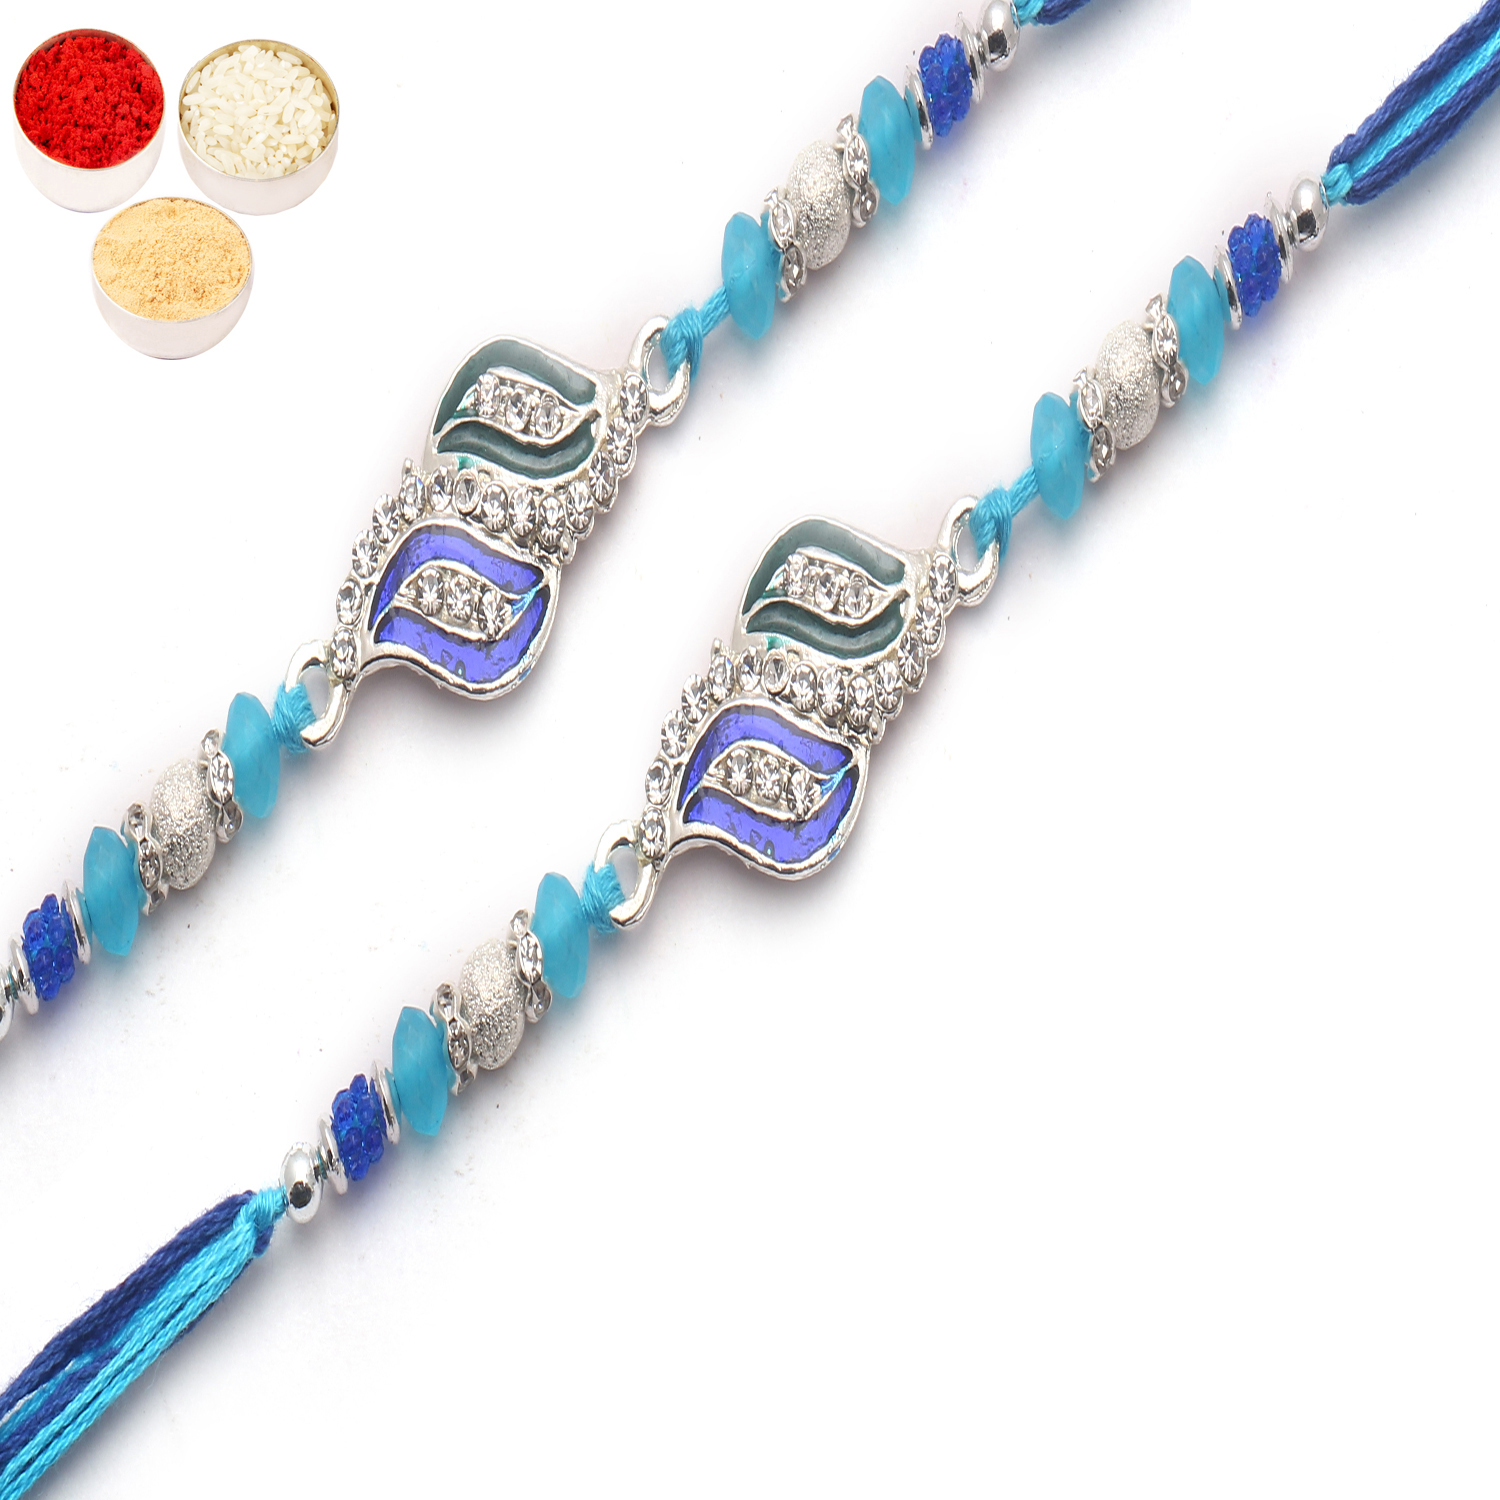 Set of 2 8293 Diamond Rakhi